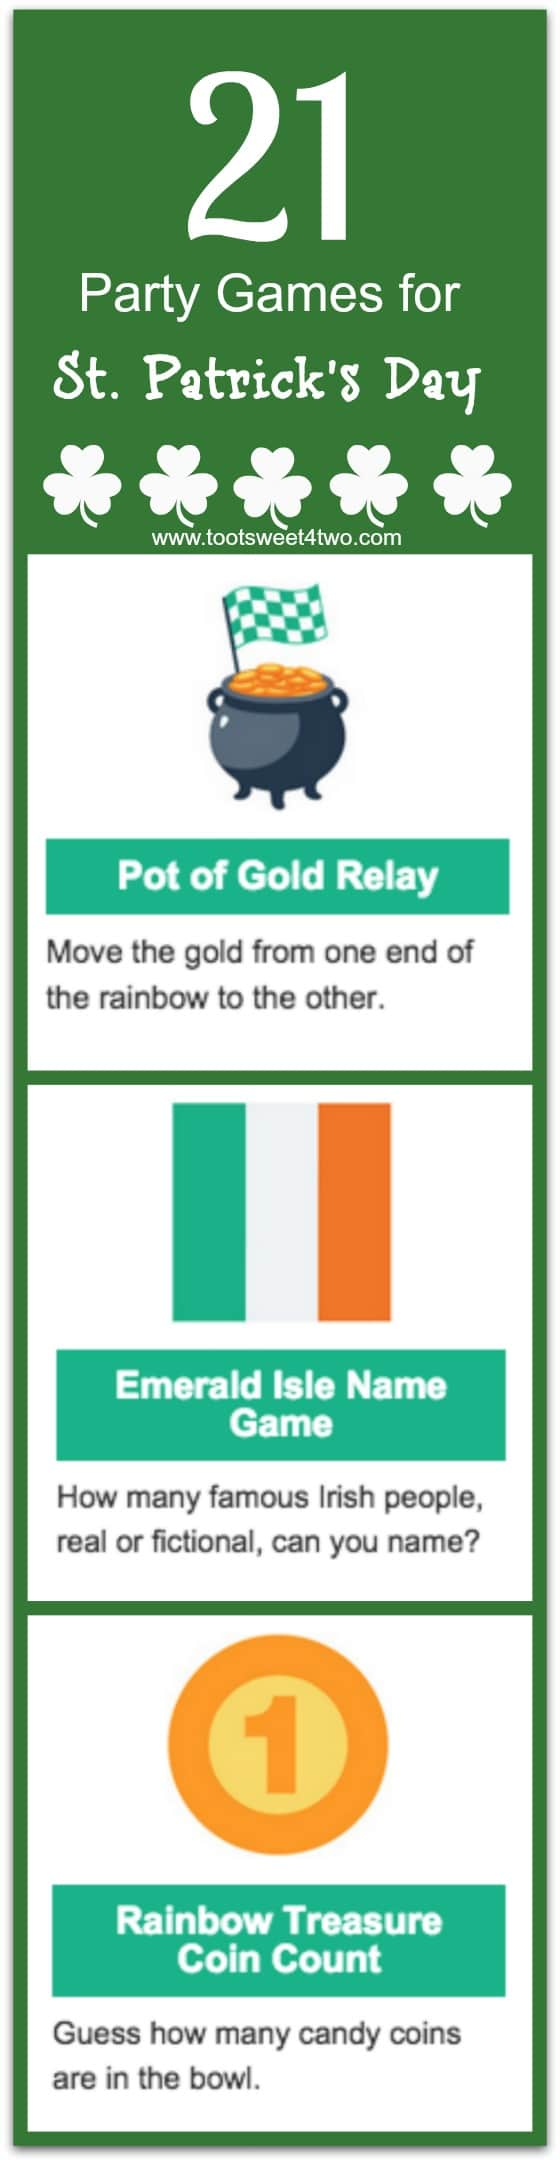 21 St. Patrick's Day Party Games for Kids